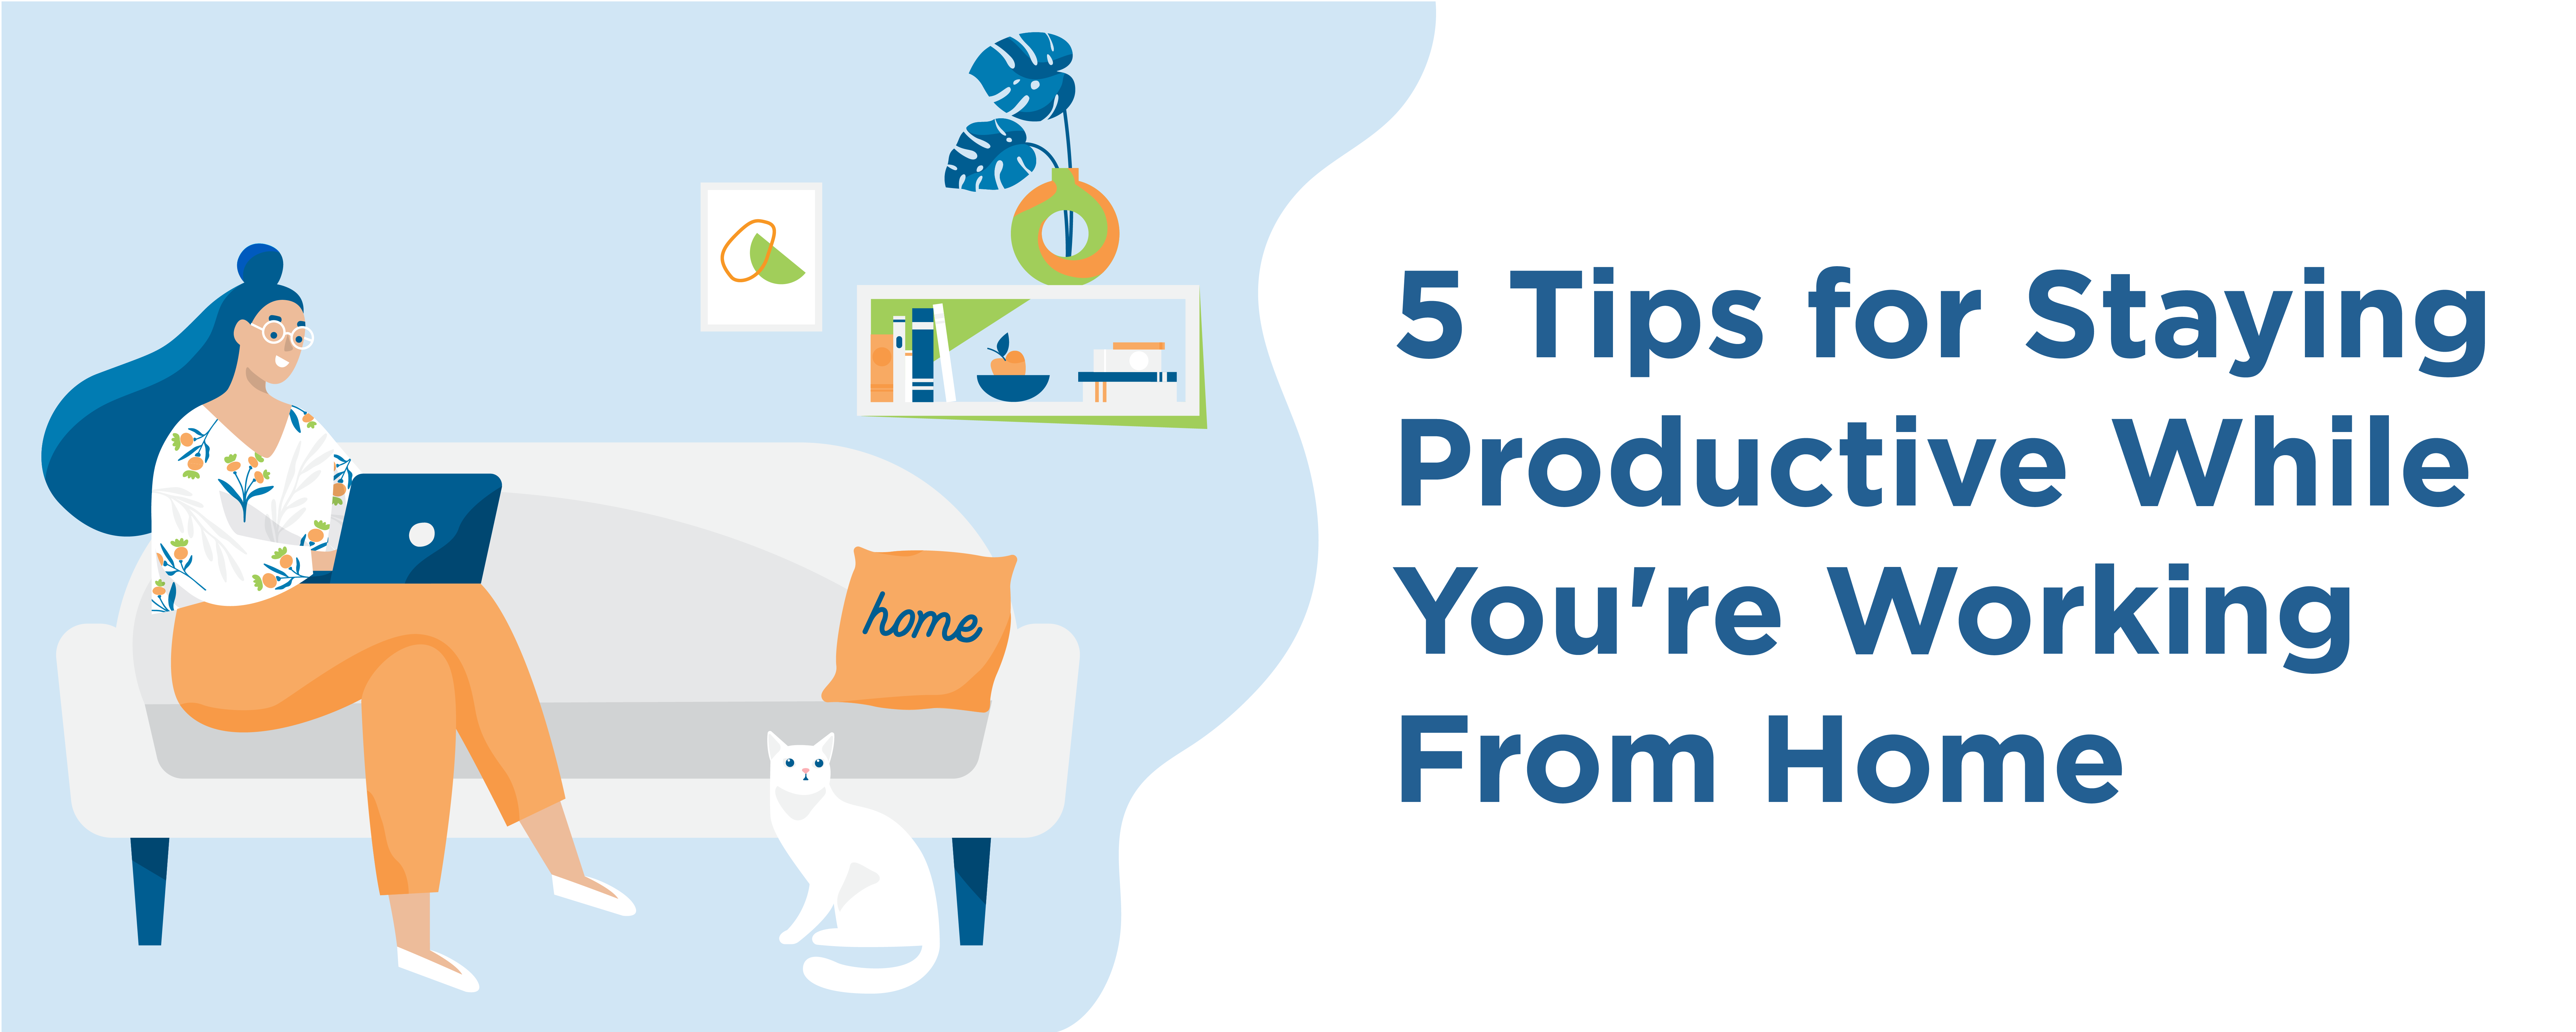 5 tips for staying productive while youre working from home.